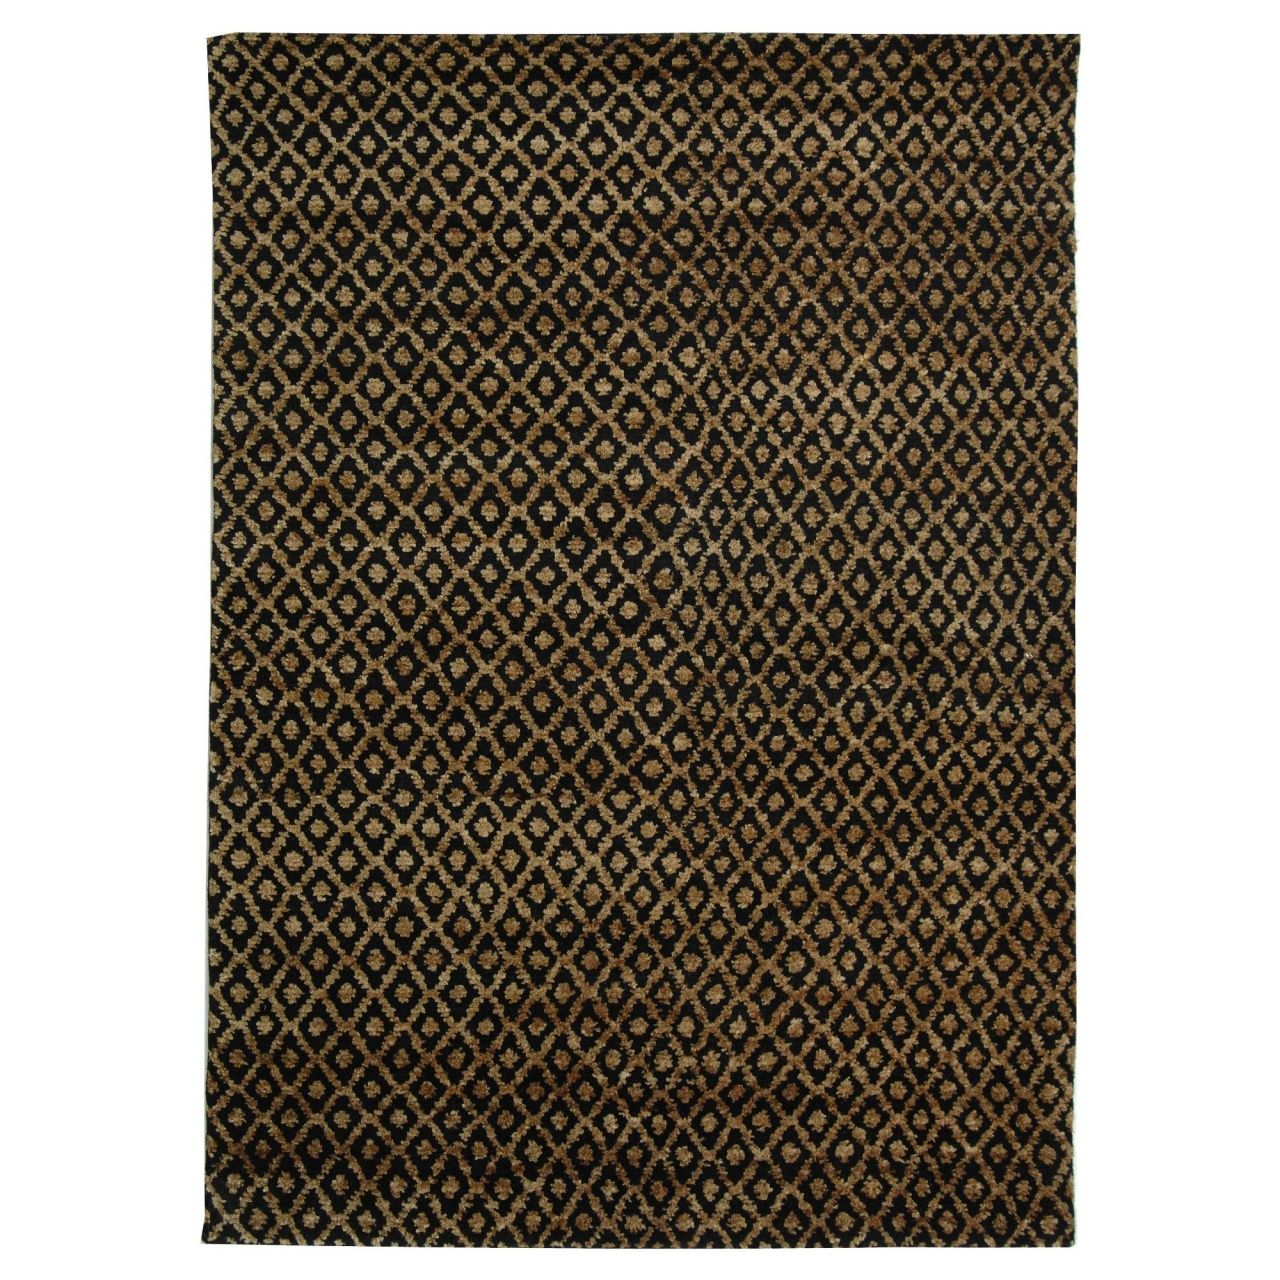 Black And Gold Bathroom Rugs Area Rugs Rugs Nature Color Palette